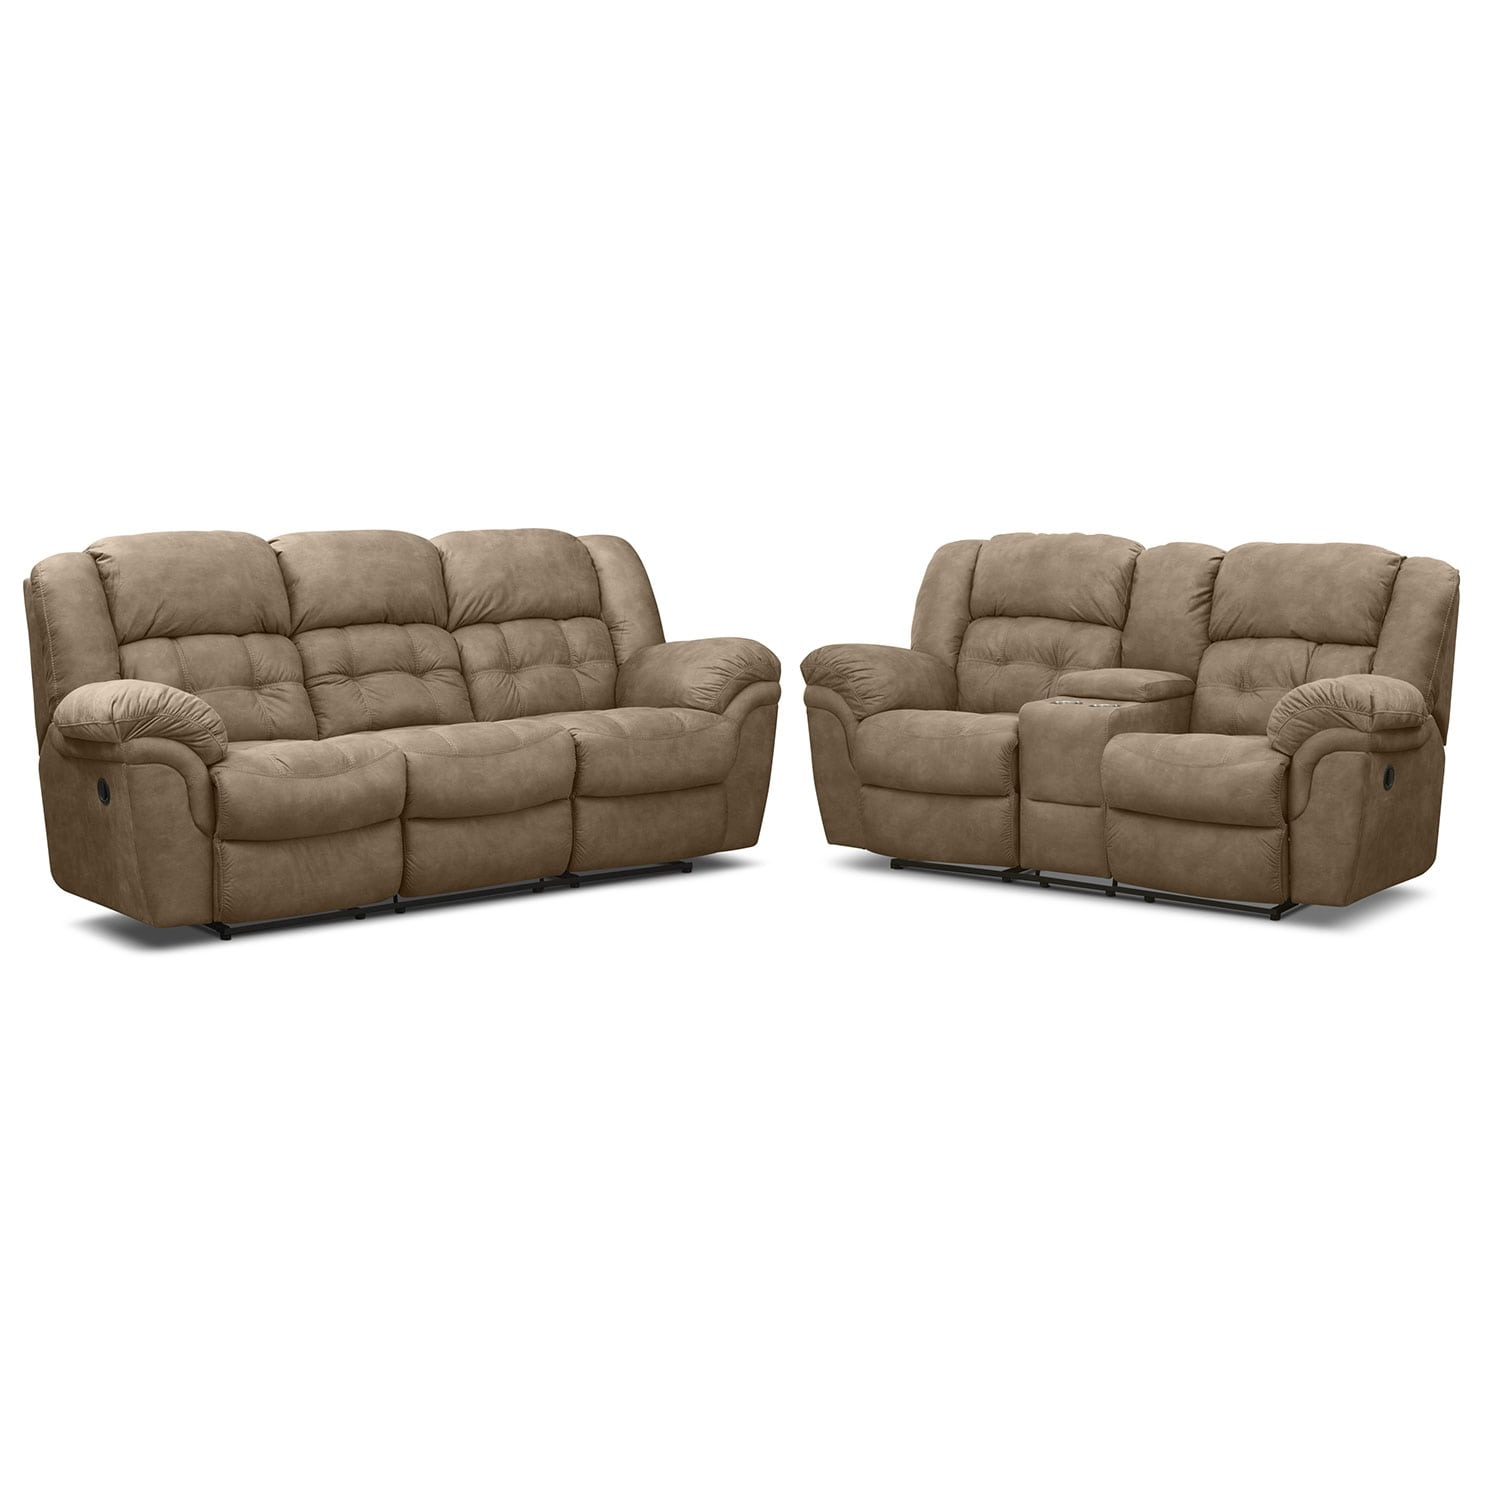 Living Room Furniture - Lancer Pecan 2 Pc. Reclining Living Room